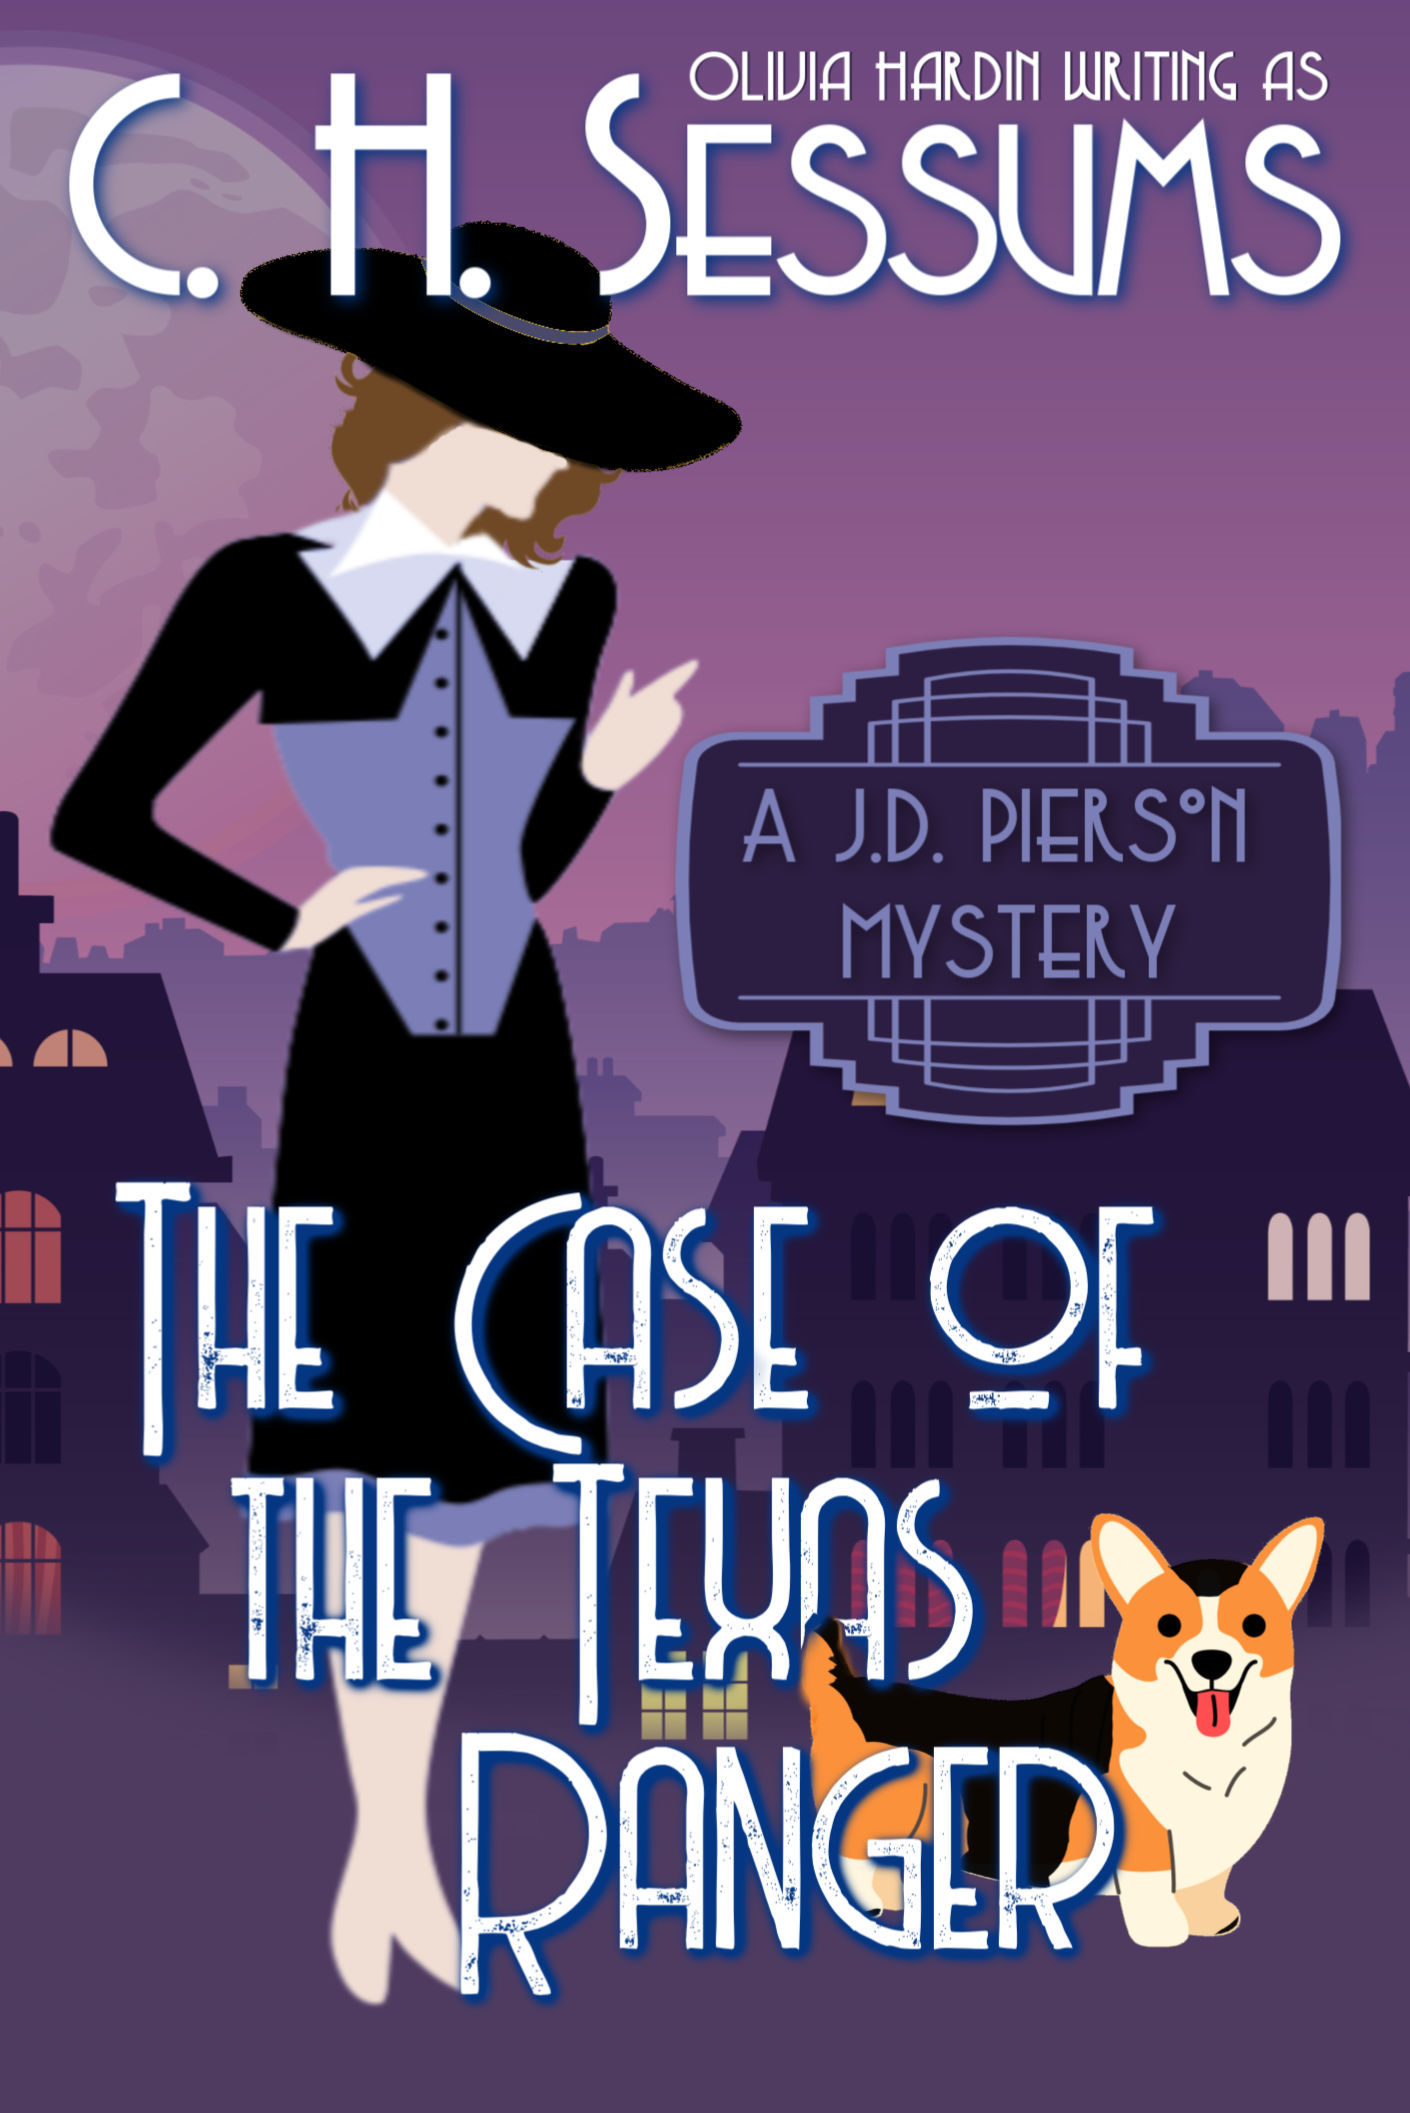 The Case of the Texas Ranger with Dolly